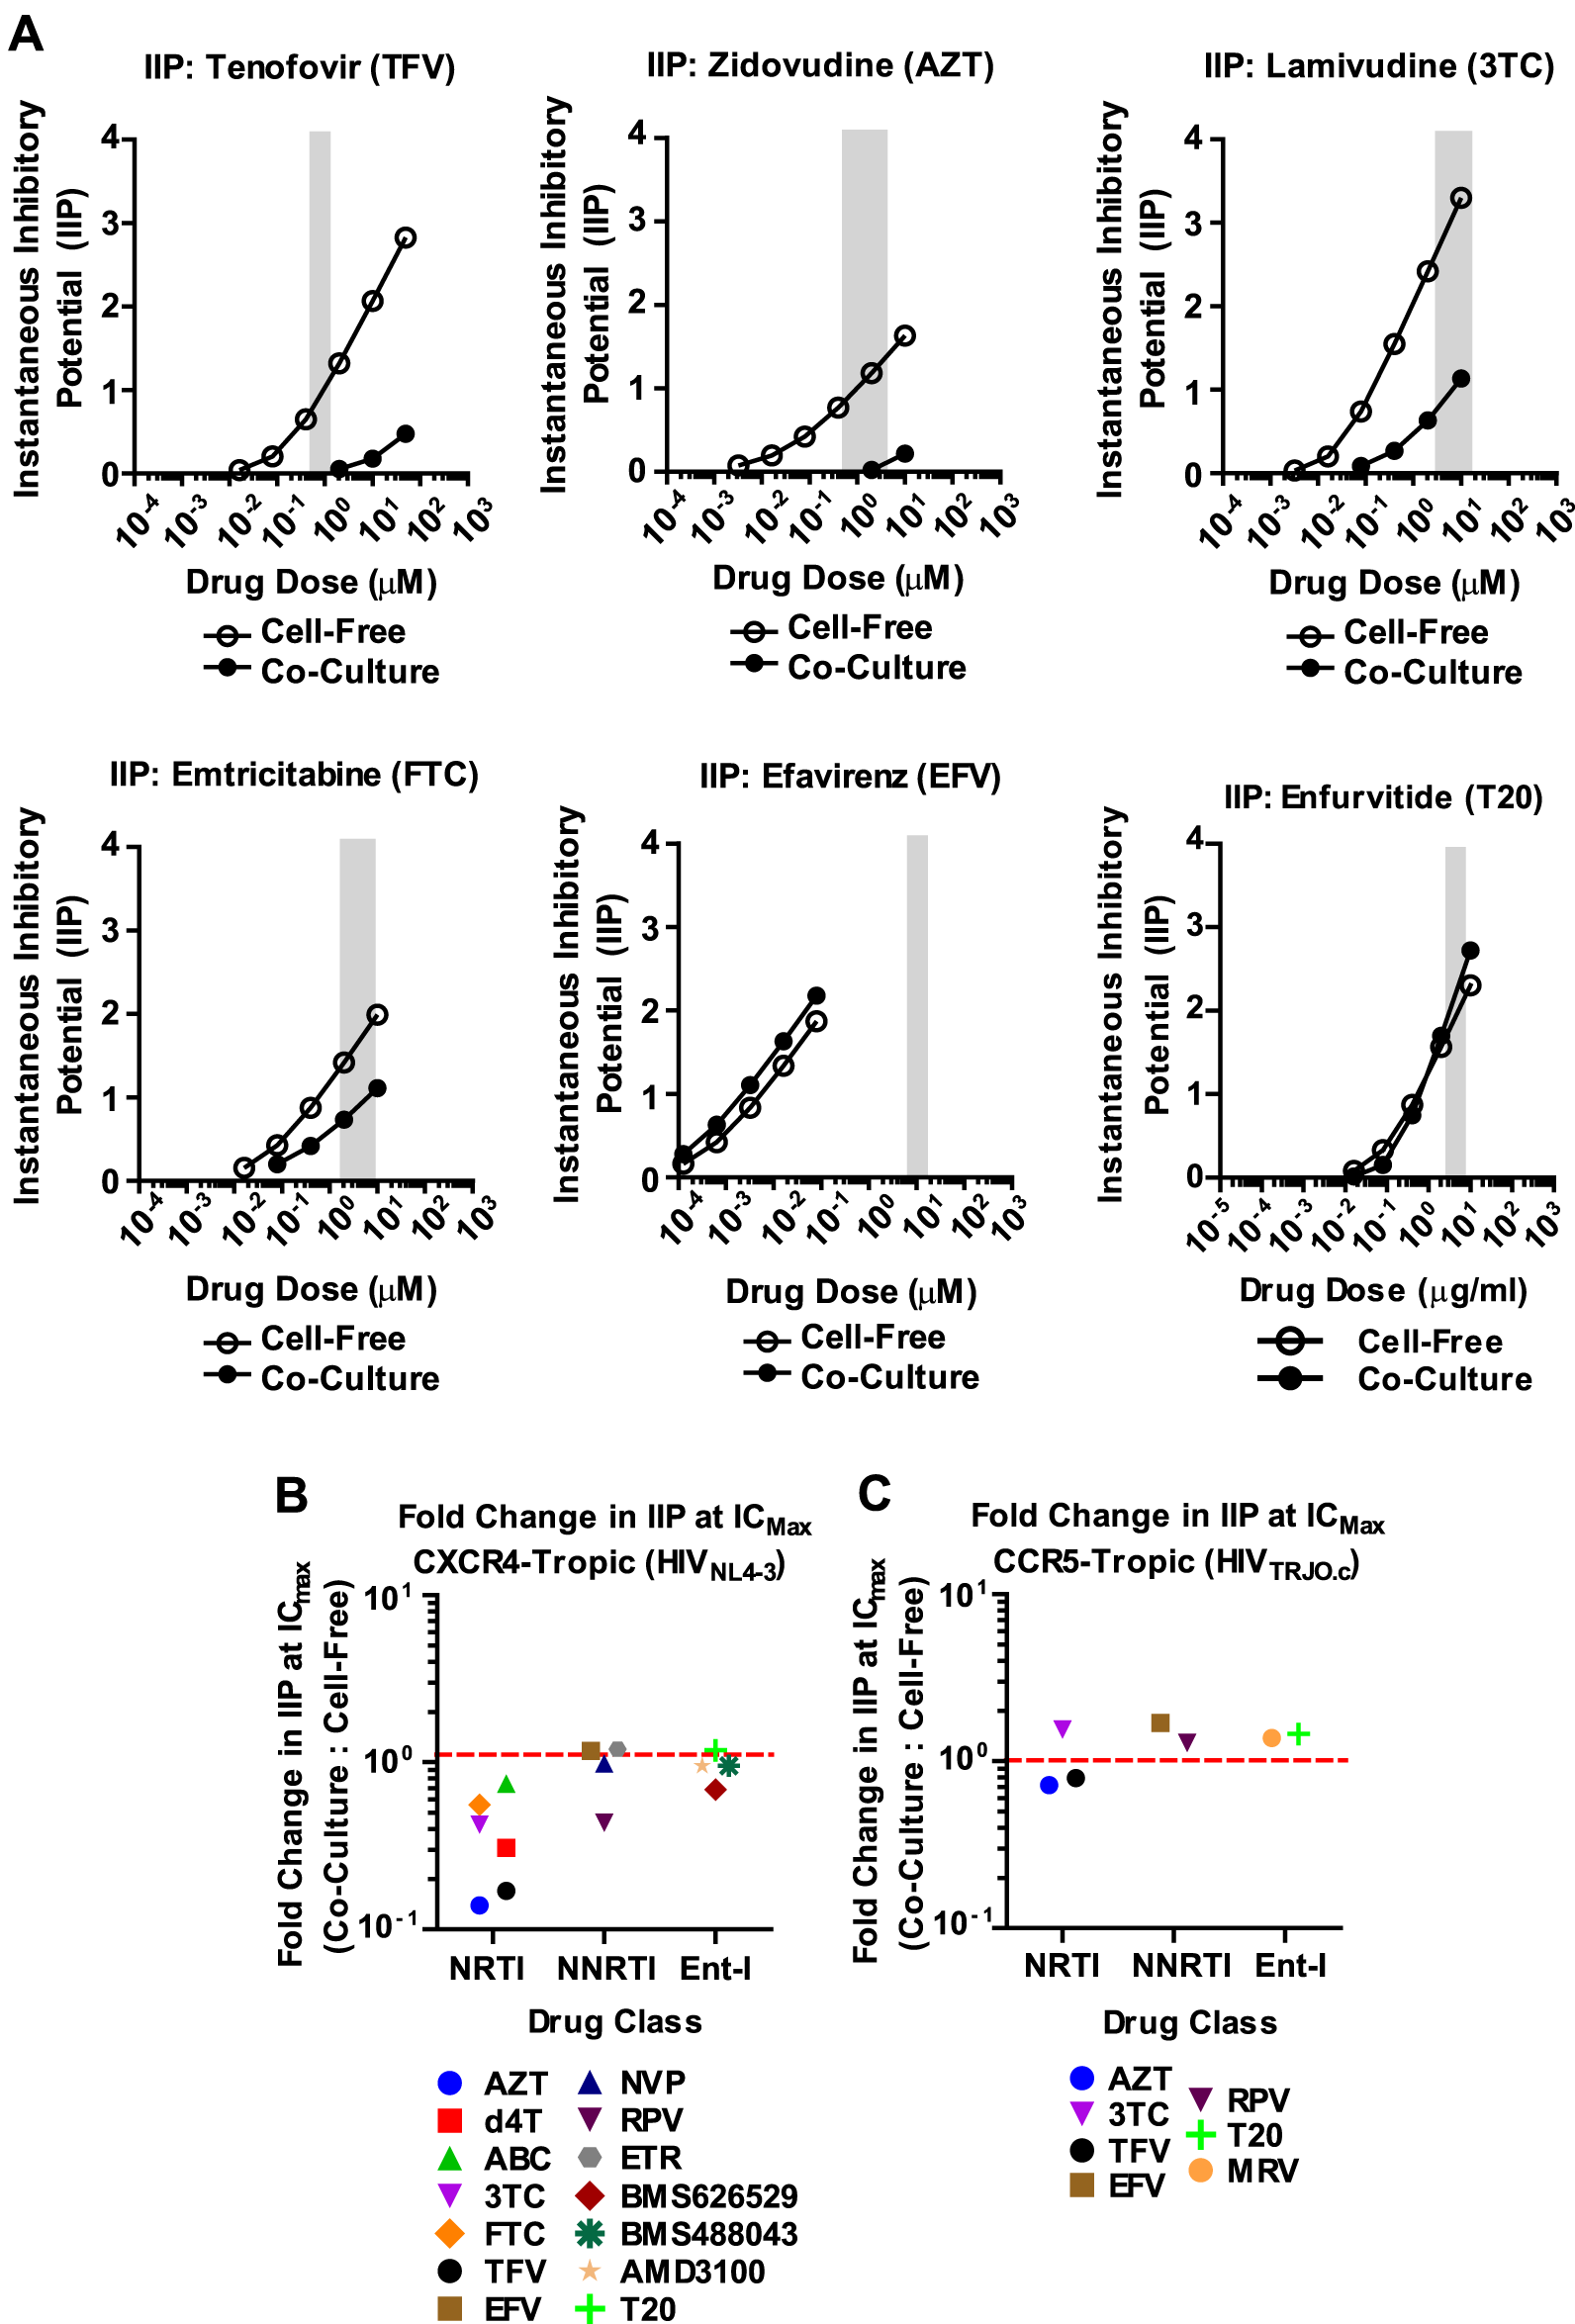 Most NNRTI and Ent-Is maintain their instantaneous inhibitory potential against HIV-1 cell-to-cell transmission.